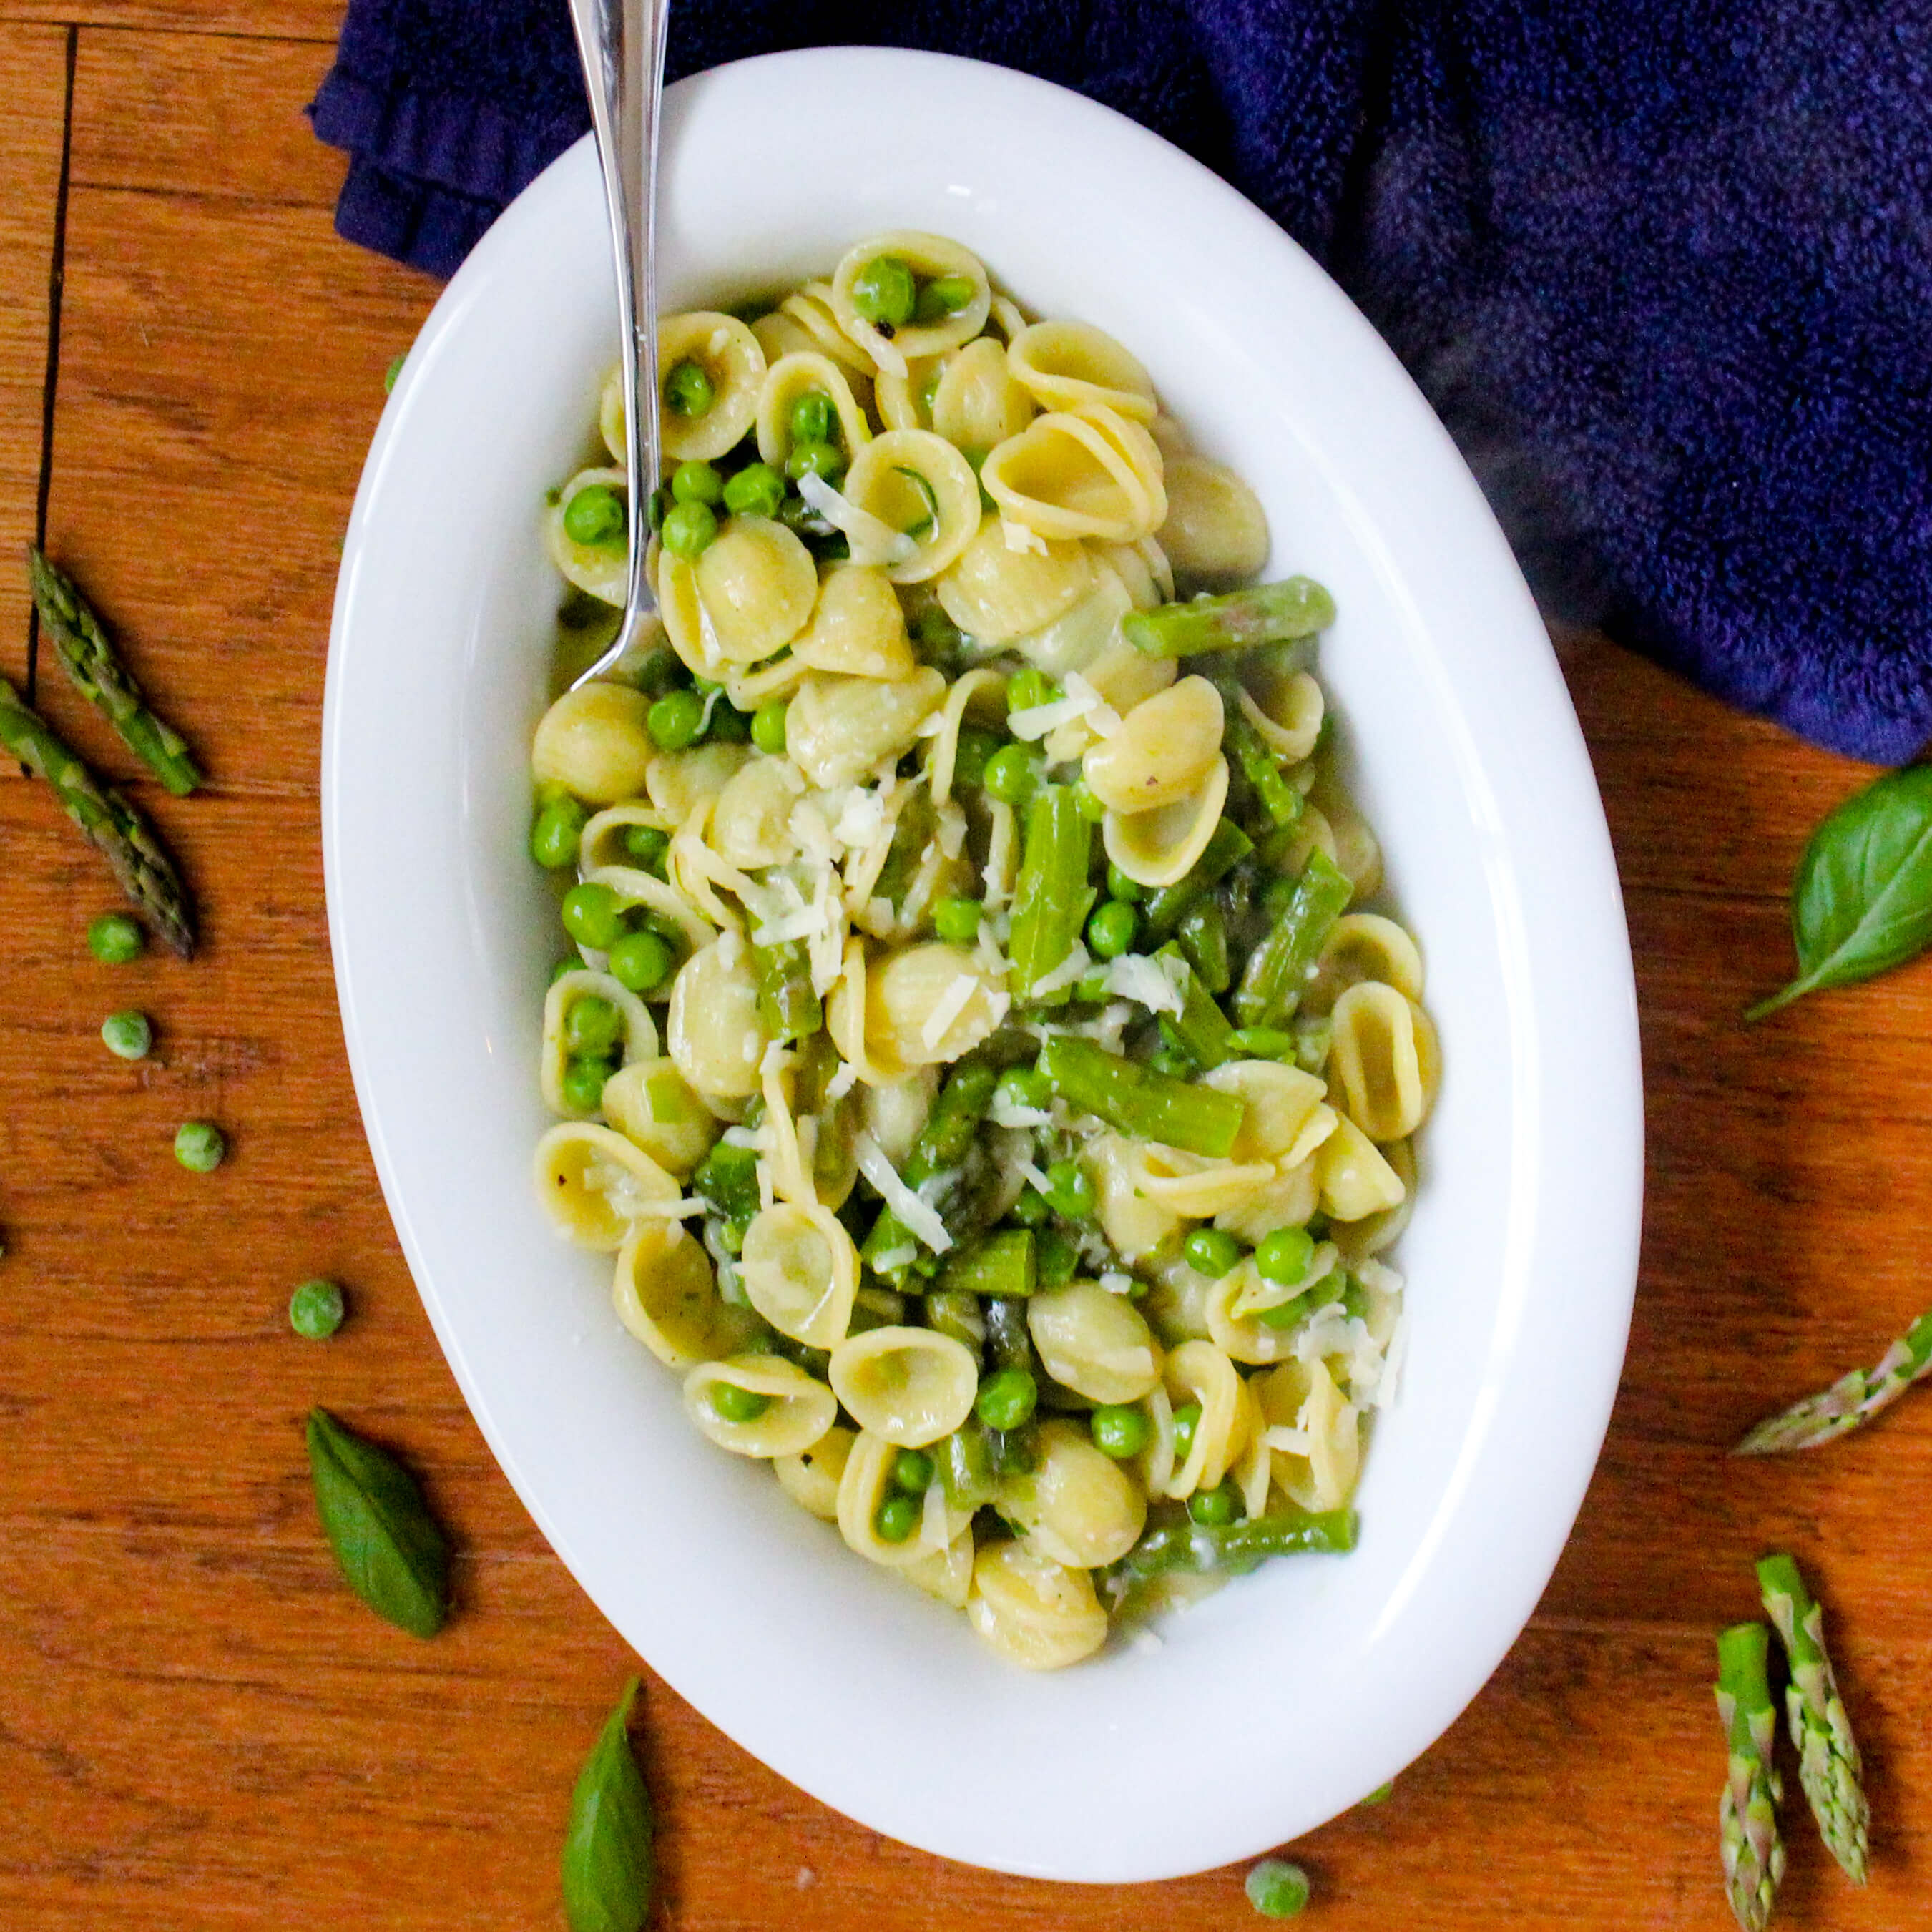 Cheesy Orecchiette Pasta with Peas and Asparagus